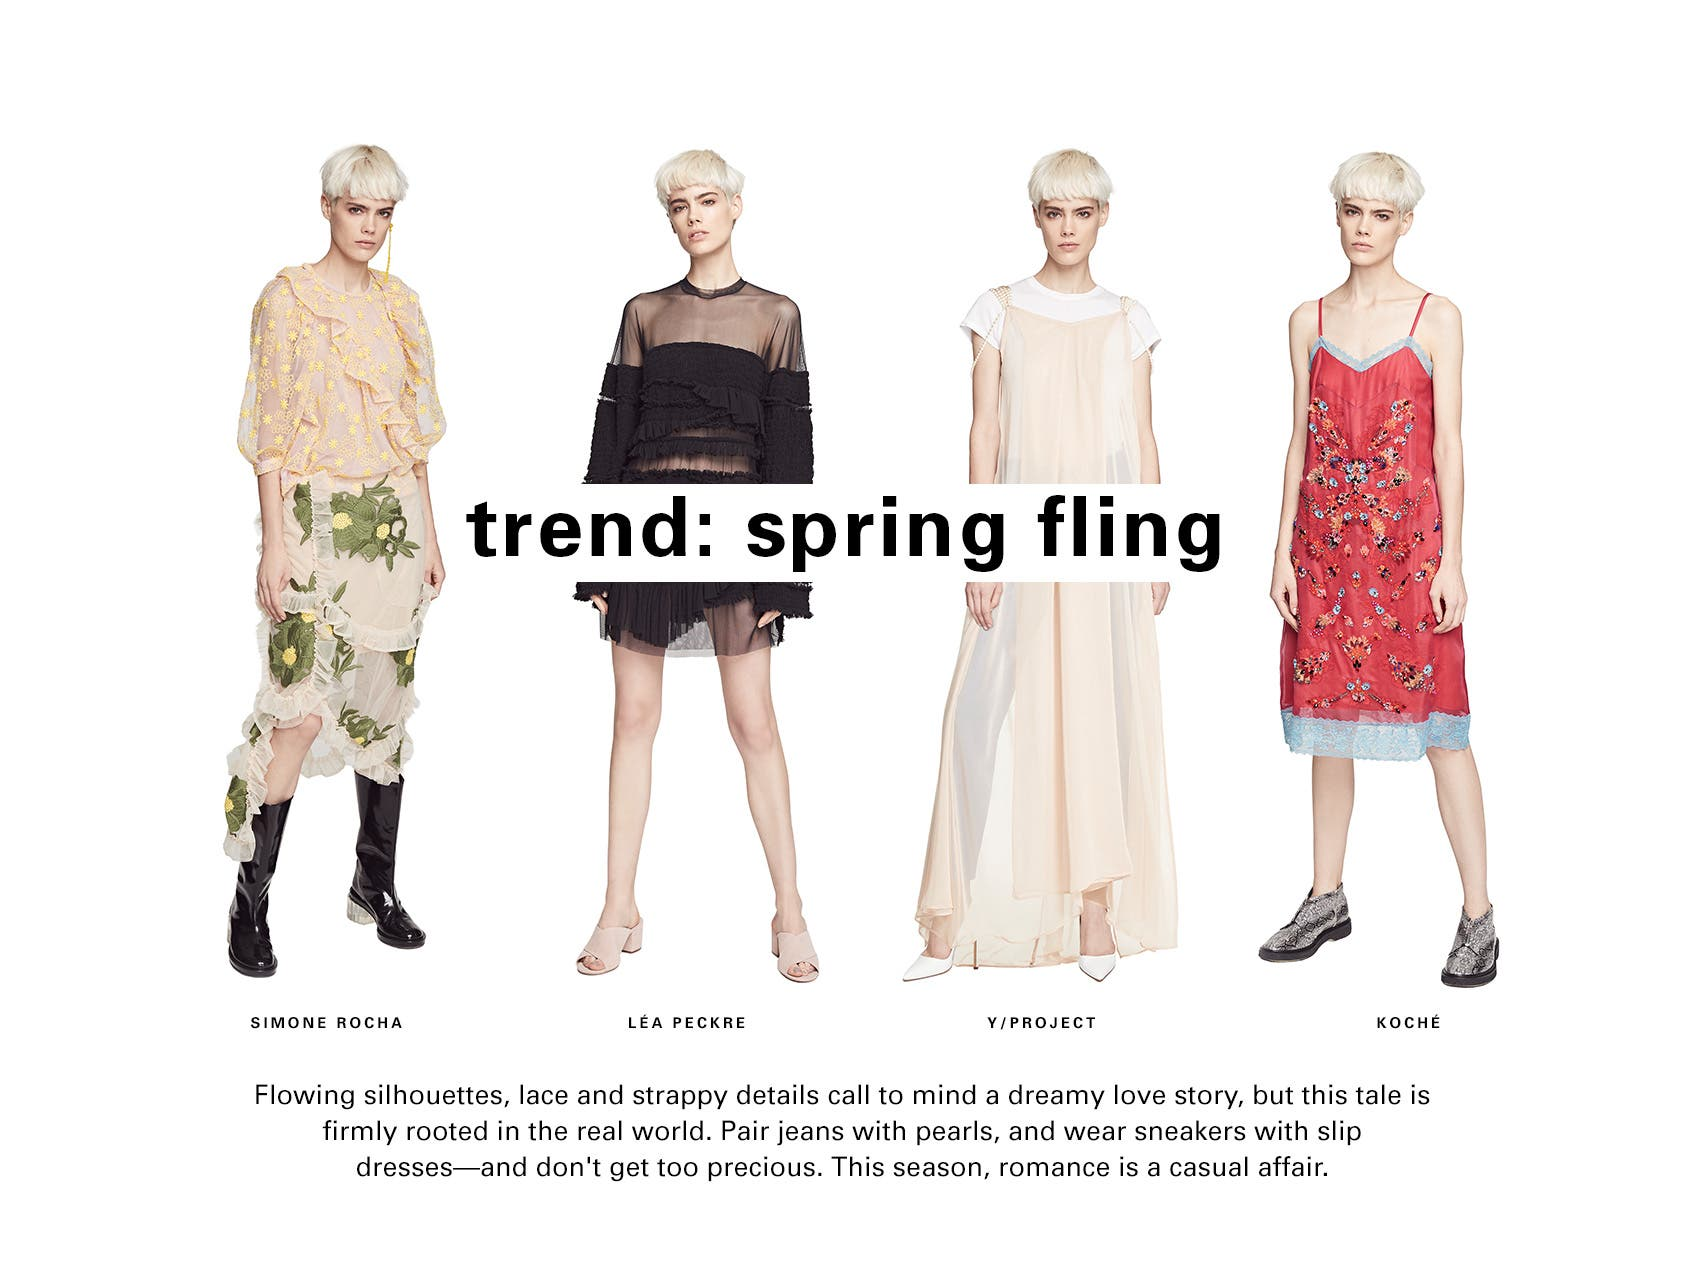 SPACE trend: spring fling. Romance returns for spring 2017 but with a rooted and sporty vibe. This time around, it's a casual affair.